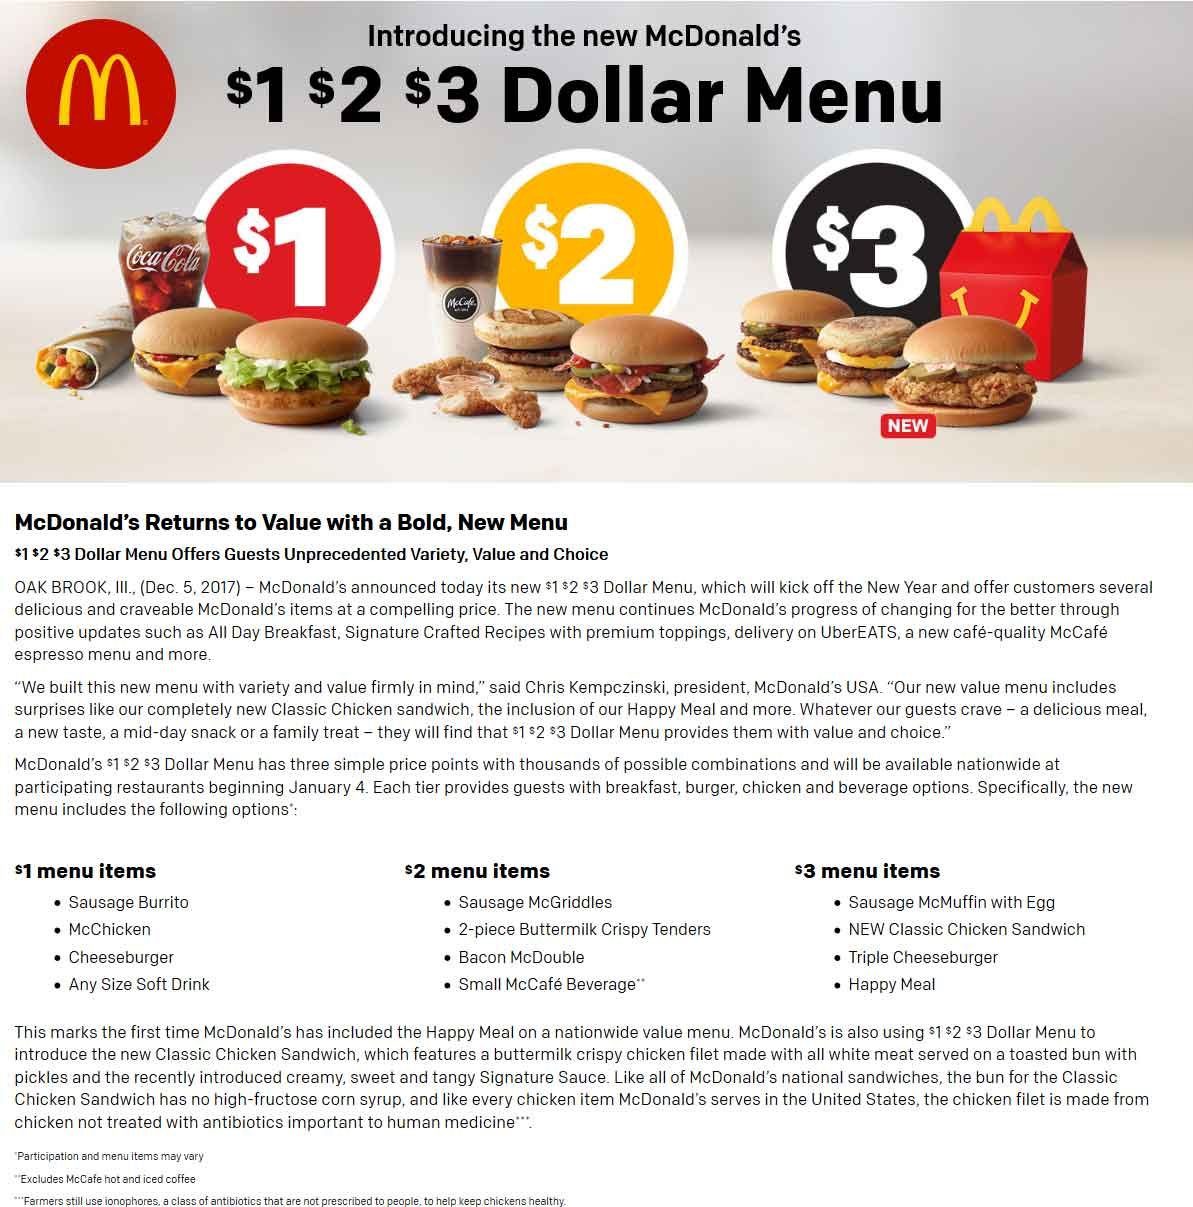 McDonalds Coupon August 2018 Happy meal added to McDonalds updated dollar menu